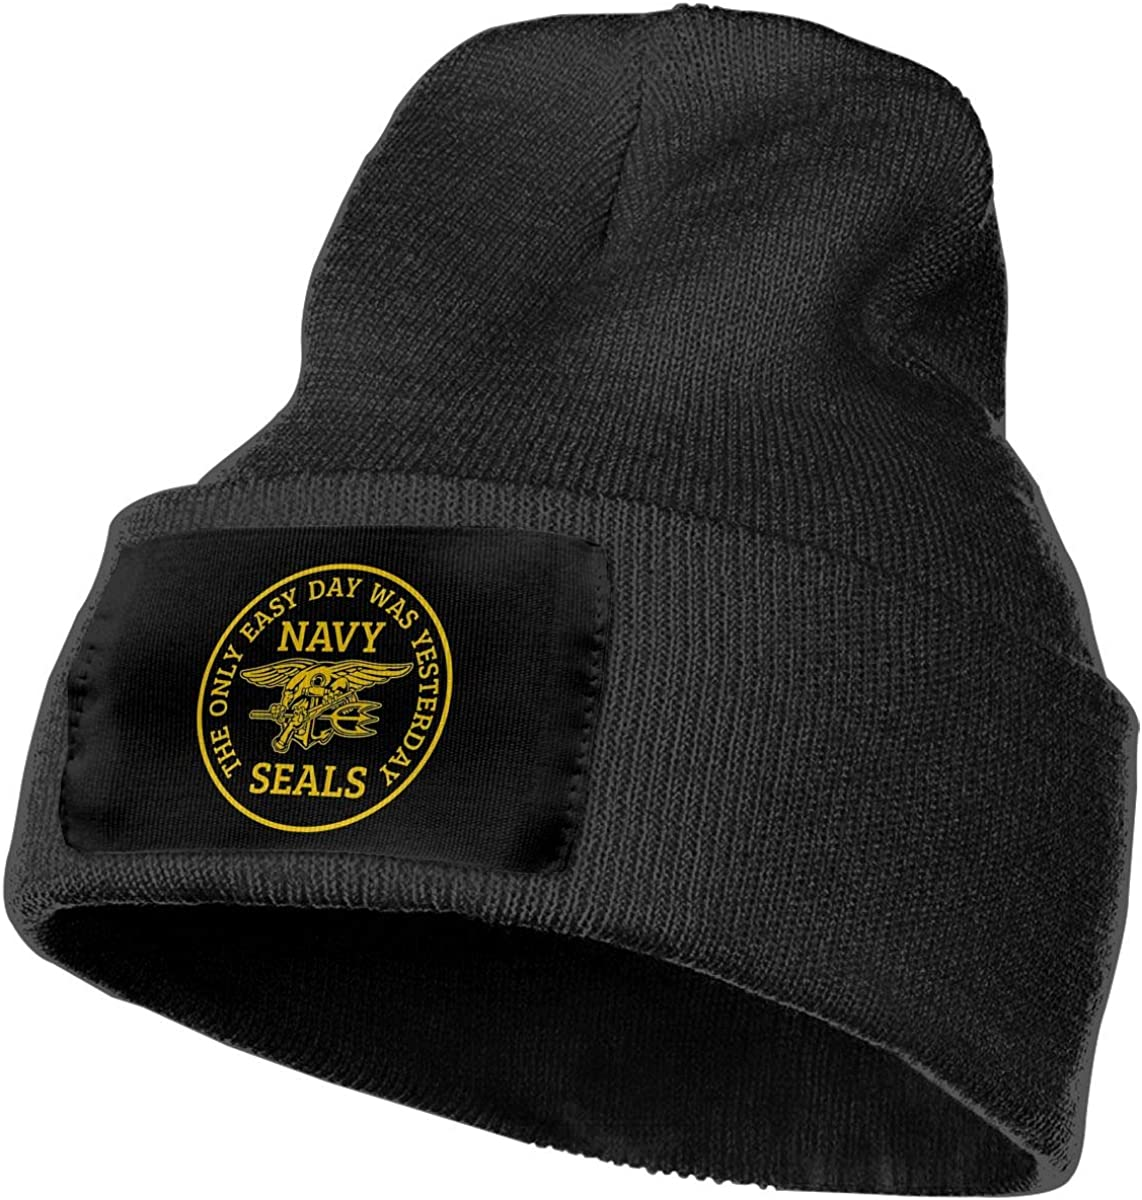 Mens/&Womens Navy Seal The Only Easy Day was Yesterday Beanie Cap Thick,Soft,Warm Slouchy Knit Hat Winter Soft Ski Cap